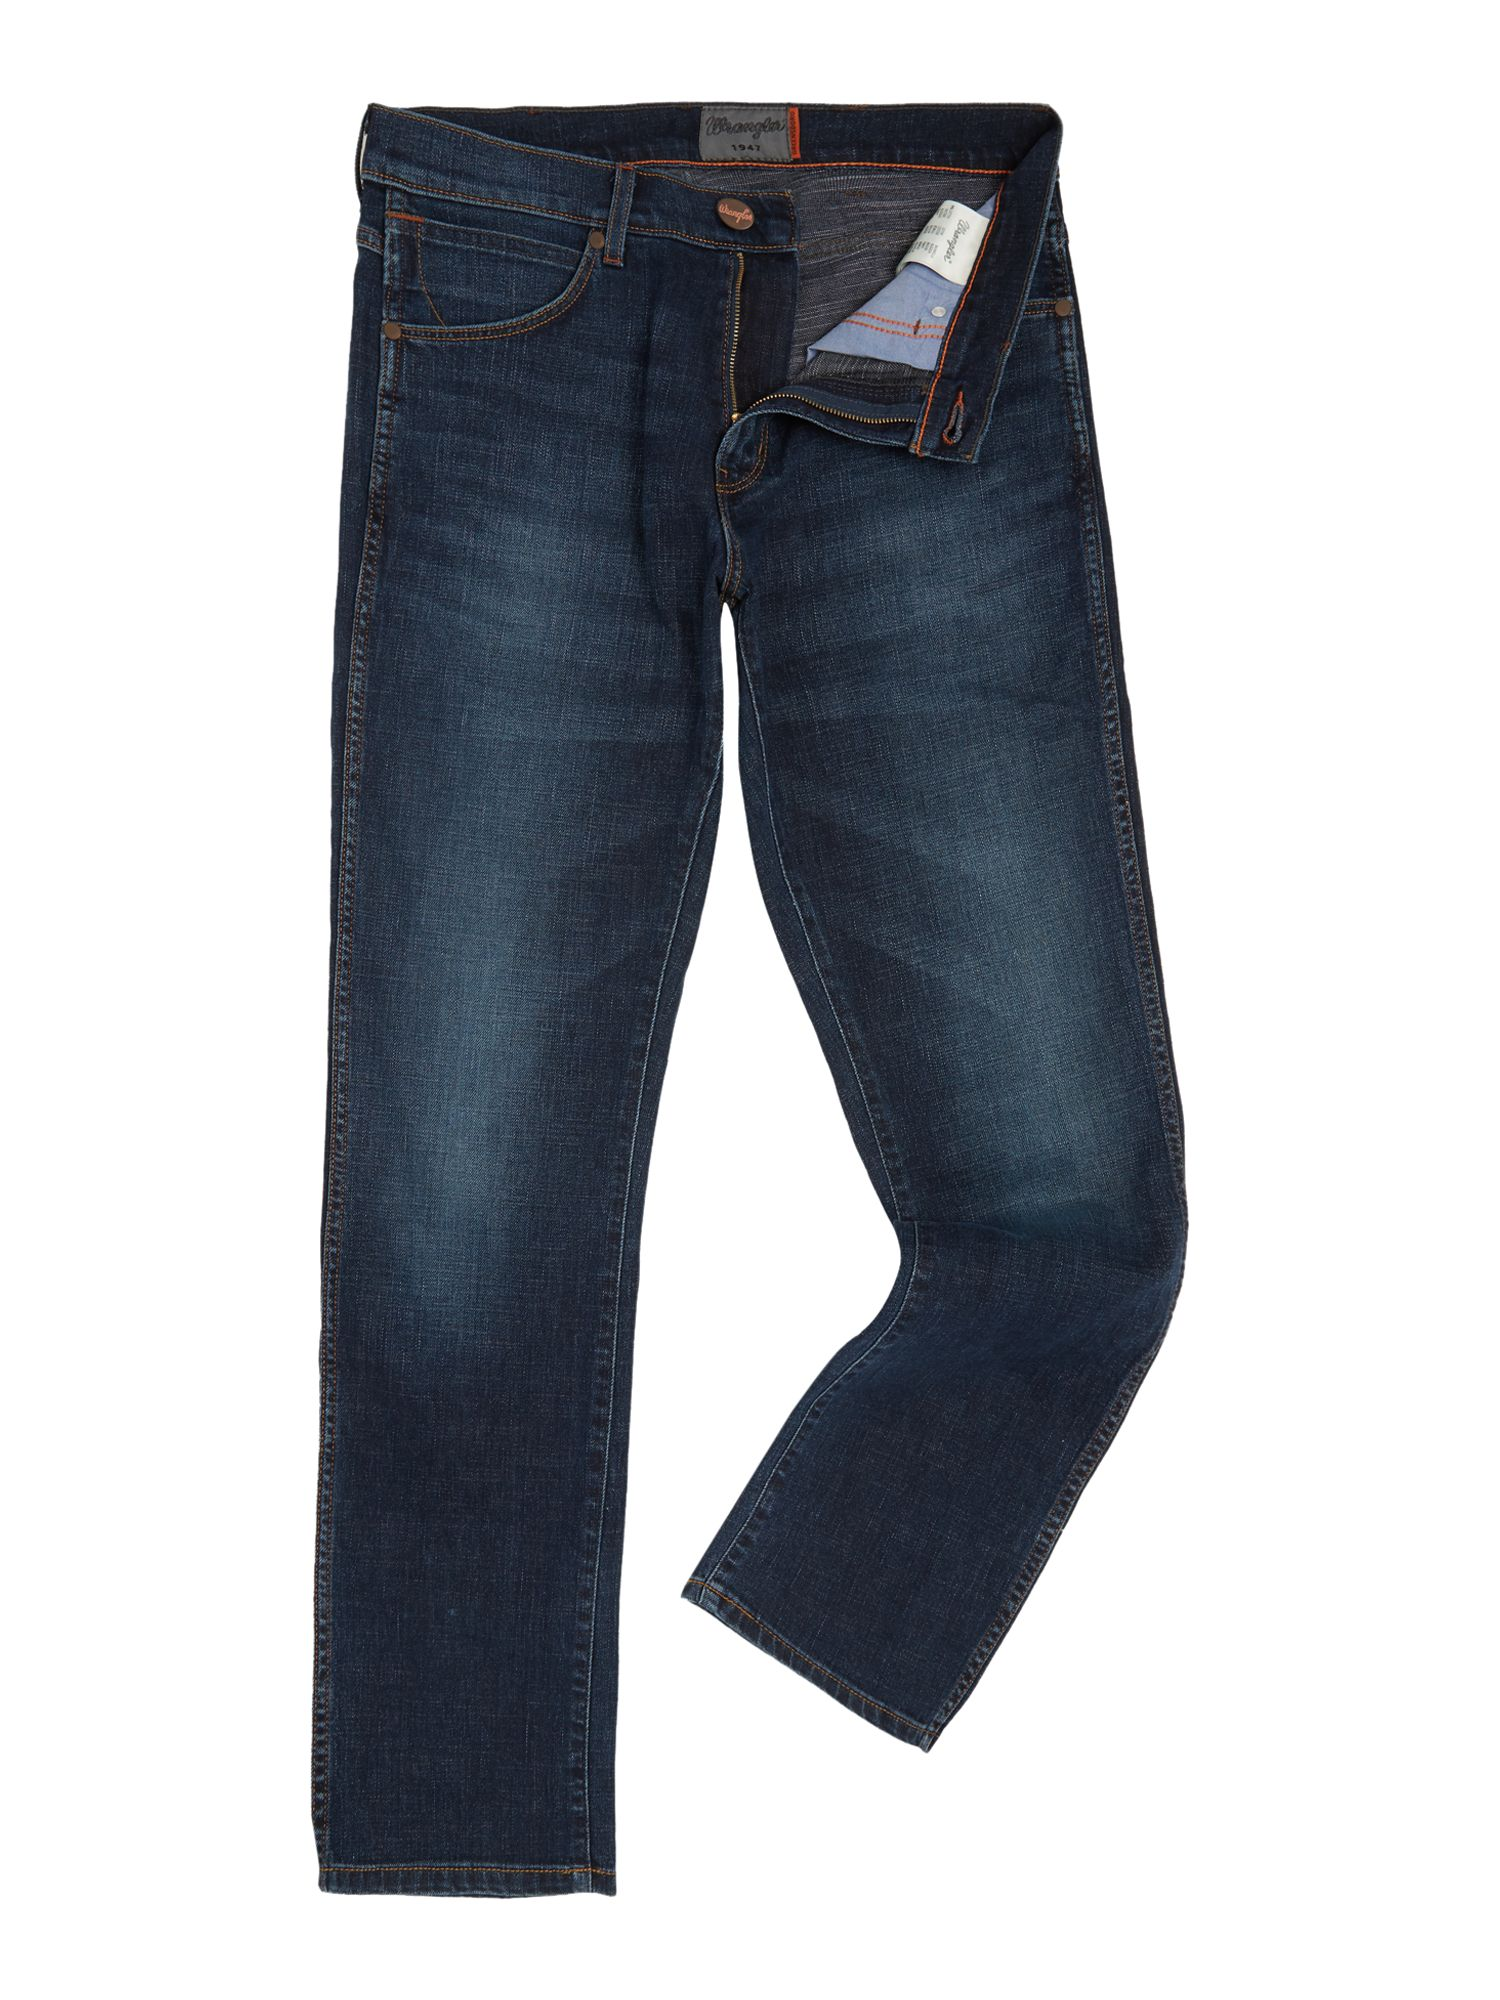 Mens Greensboro El Camino Regular Fit Jeans, Denim Mid Wash